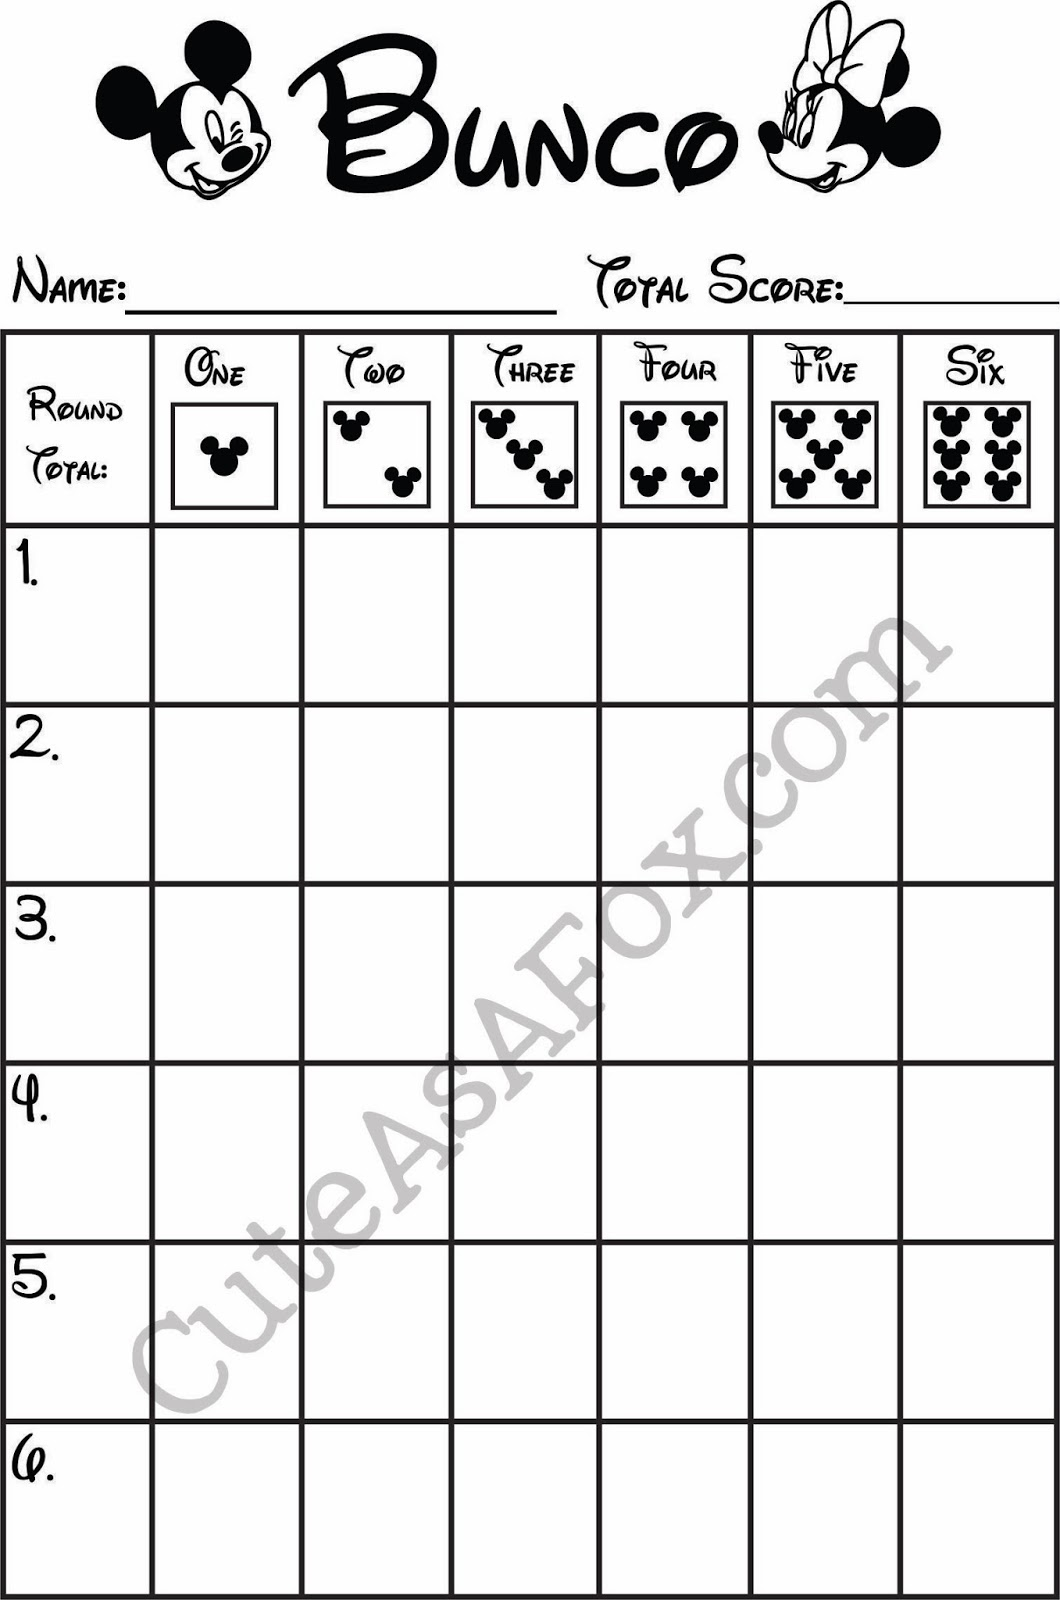 image about Printable Bunco Score Cards titled Disneyside Bunco Social gathering Ranking Card Absolutely free Printable! - Purple